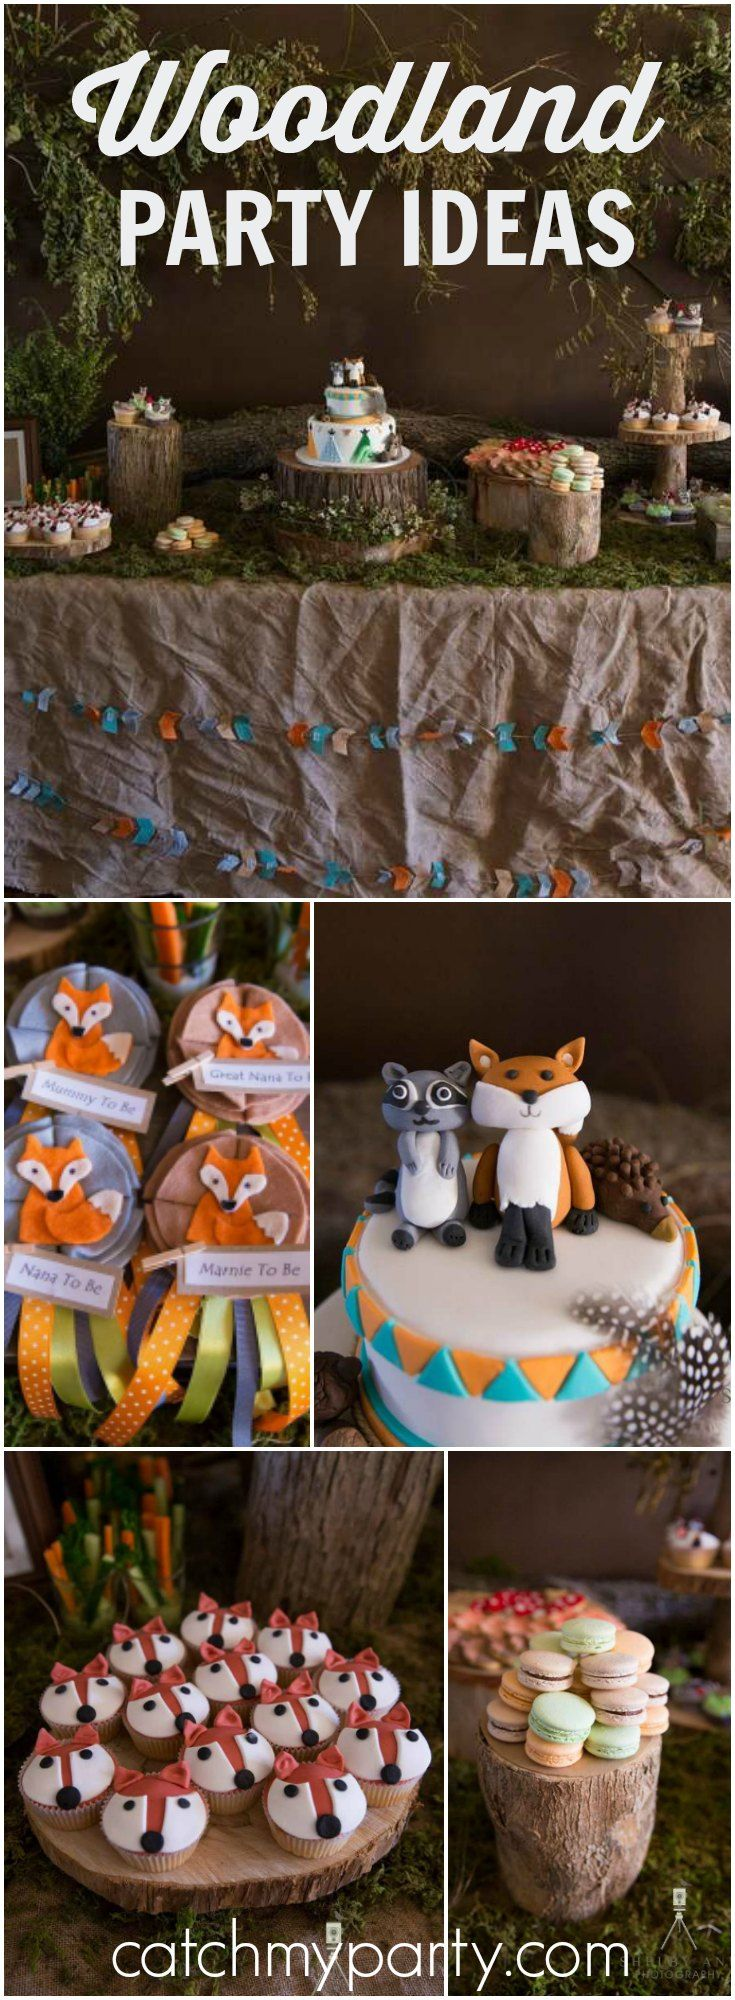 How adorable is this woodland baby shower?! See more party ideas at Catchmyparty.com!